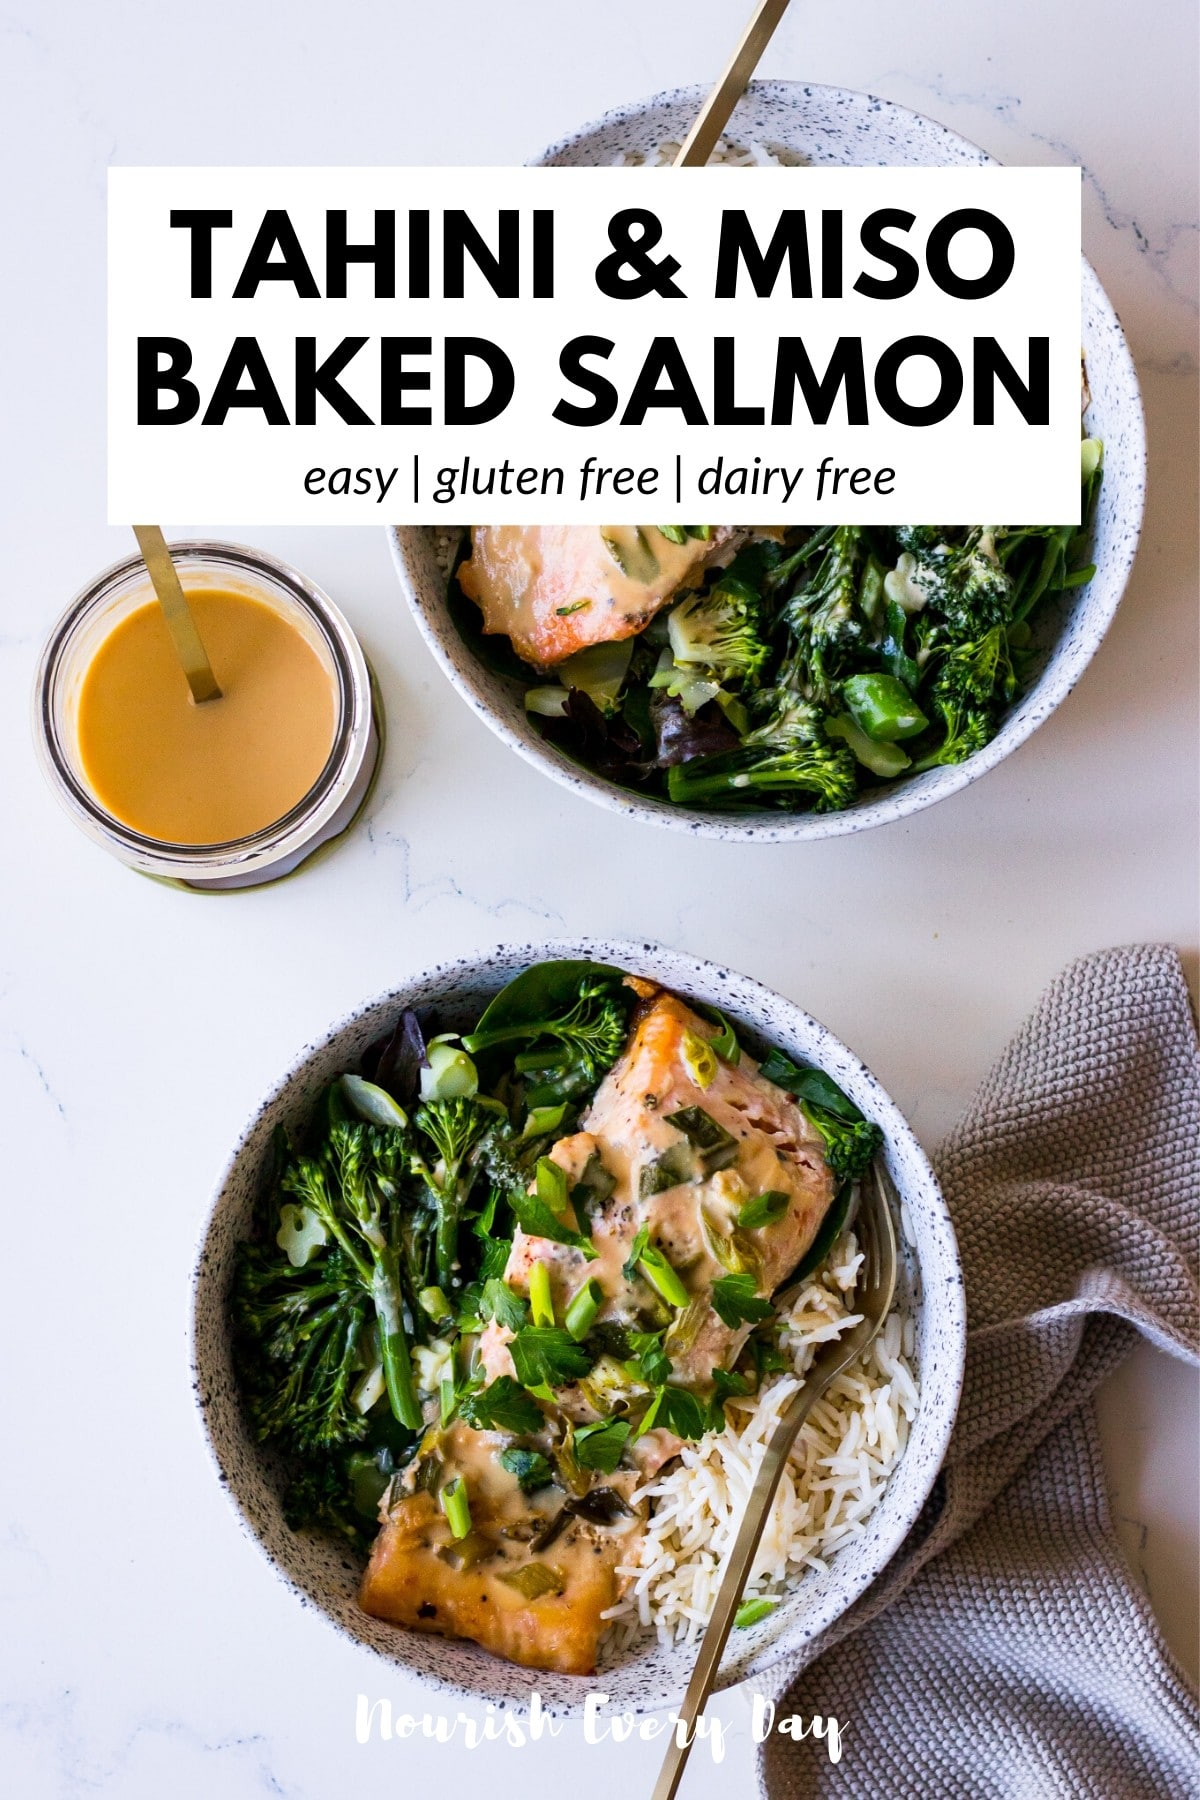 Tahini Miso Baked Salmon Recipe by Nourish Every Day Blog